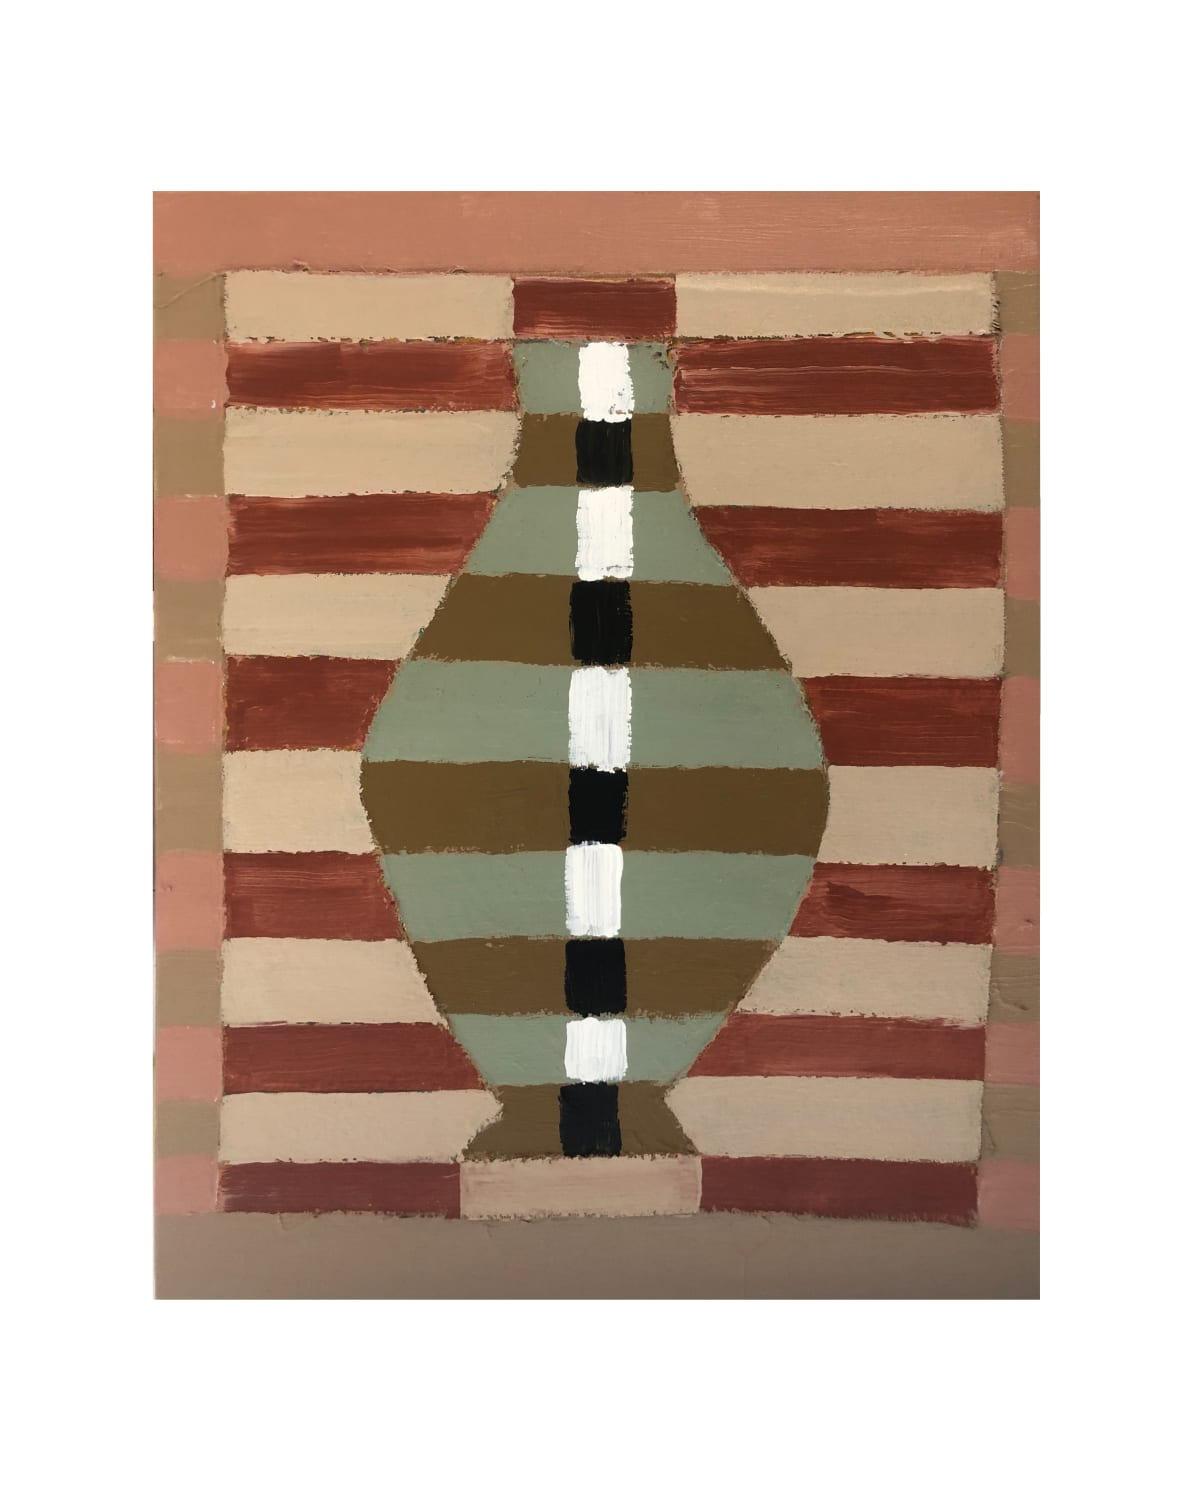 Wayne Pate Water Jug In Polychromy Abstract No. I Canvas And Acrylic On Linen 55 x 46 cm